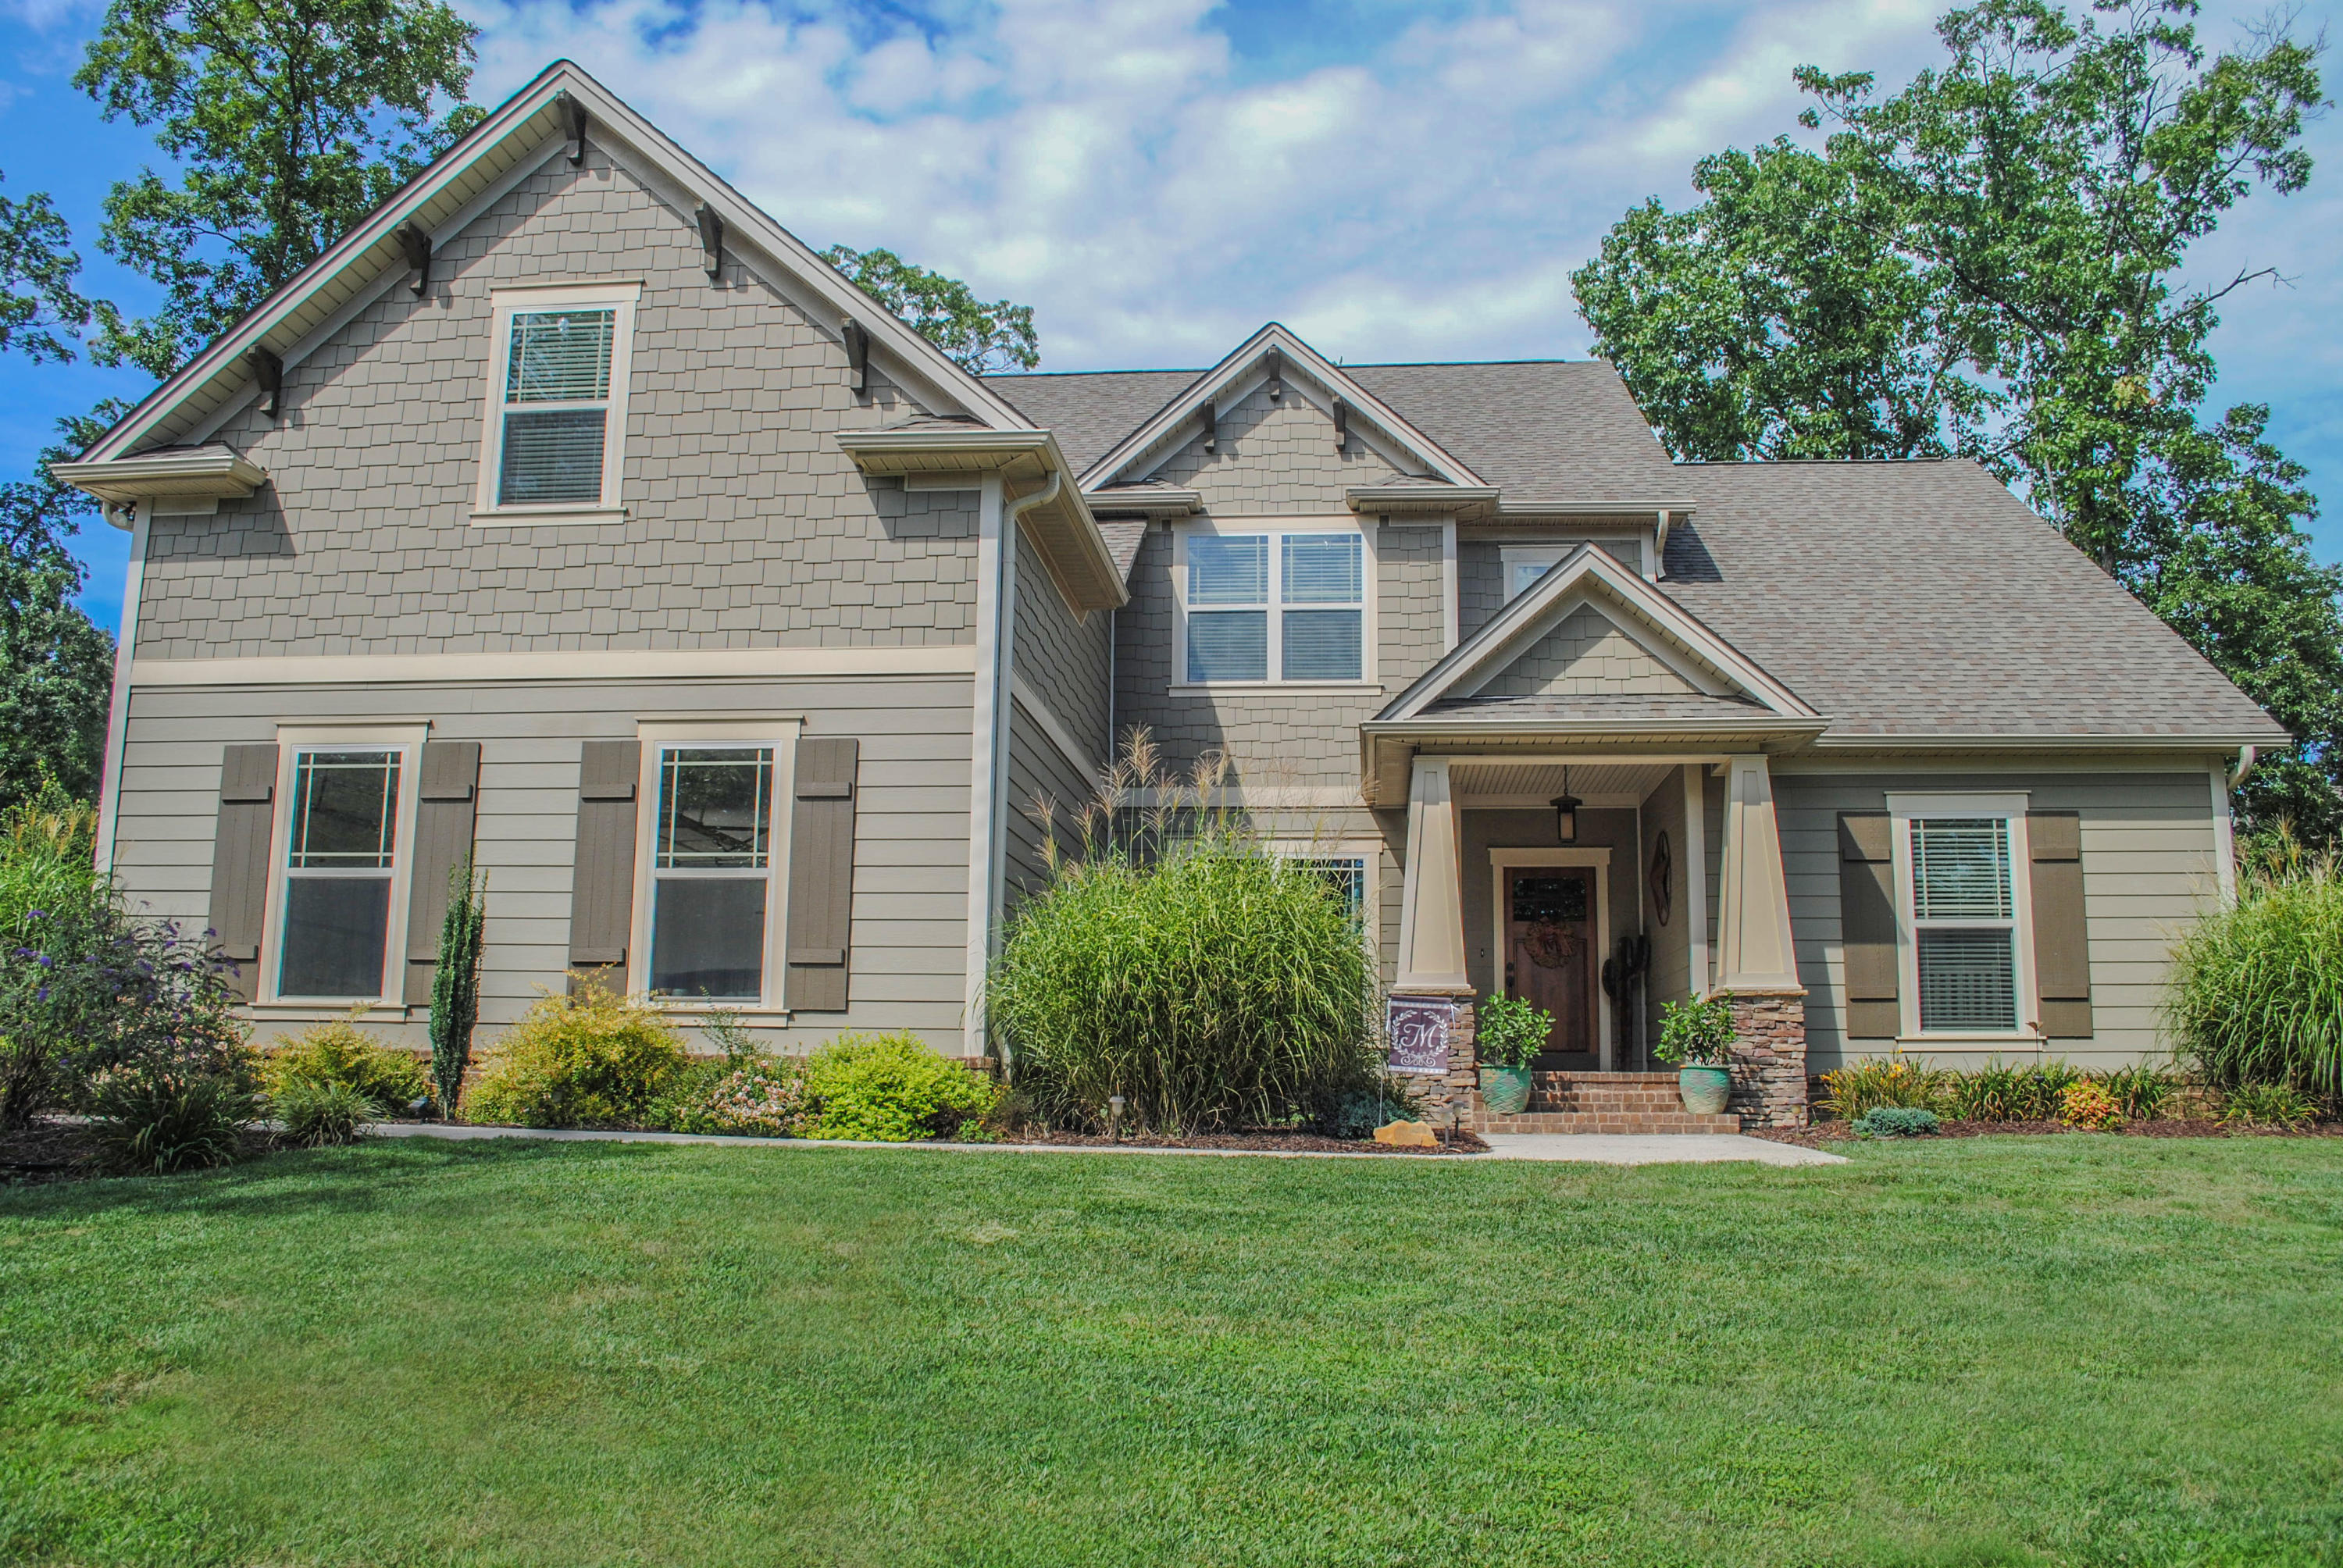 4806 Saddle Tr, Signal Mountain, TN 37377